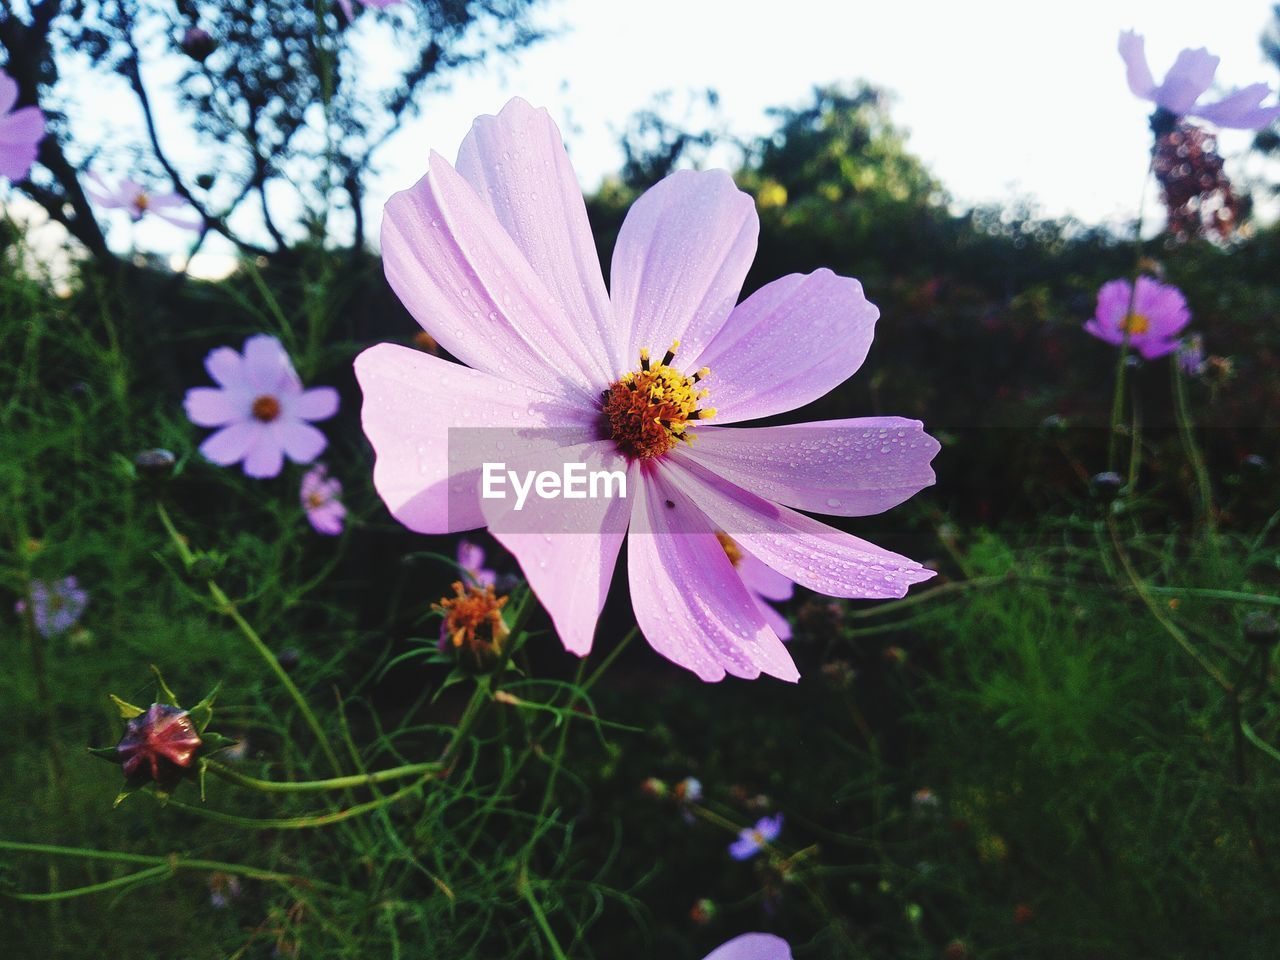 flowering plant, flower, plant, freshness, petal, beauty in nature, growth, vulnerability, fragility, flower head, inflorescence, close-up, focus on foreground, nature, day, no people, cosmos flower, pollen, pink color, field, outdoors, purple